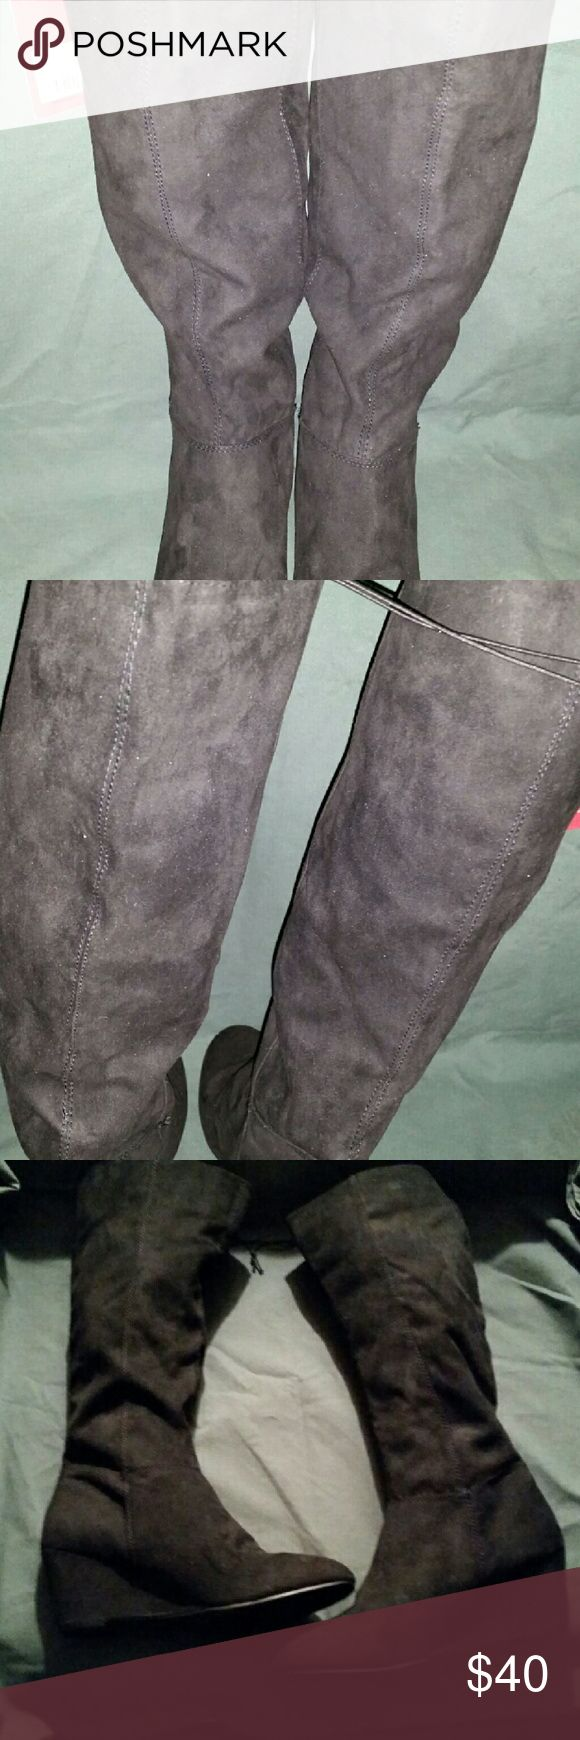 Merona Knee High 10 Wedge Heel Boots Career wedge heels, full length zipper for easy access, wide calf, slightly padded insole for walking ease Merona  Shoes Heeled Boots